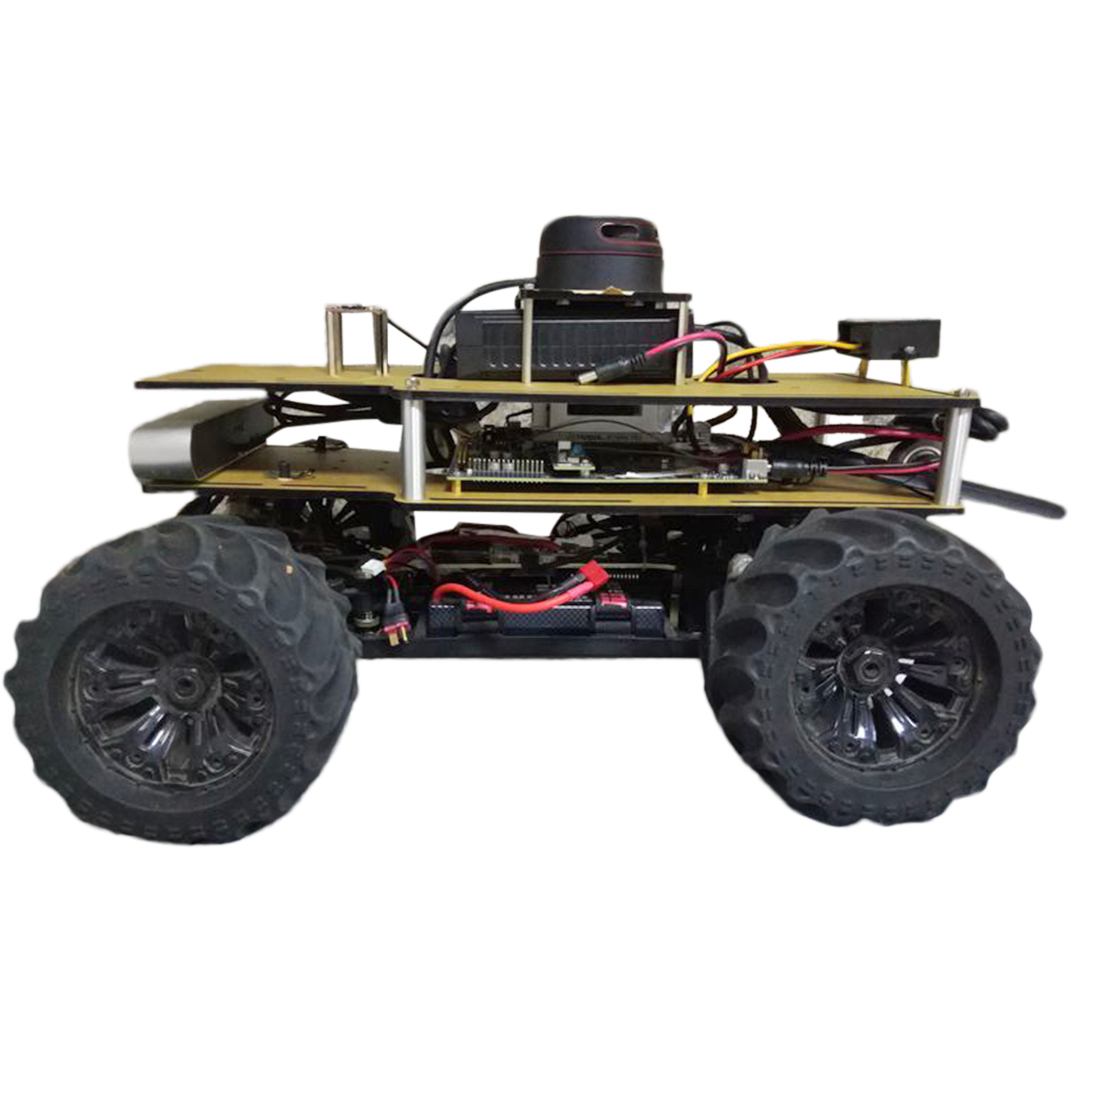 1/10 Programmable ROS Robot Ackerman Suspension Autopilot Ride Kit For Jetson TX2 - Outdoor Version/Indoor Version/Basic Version